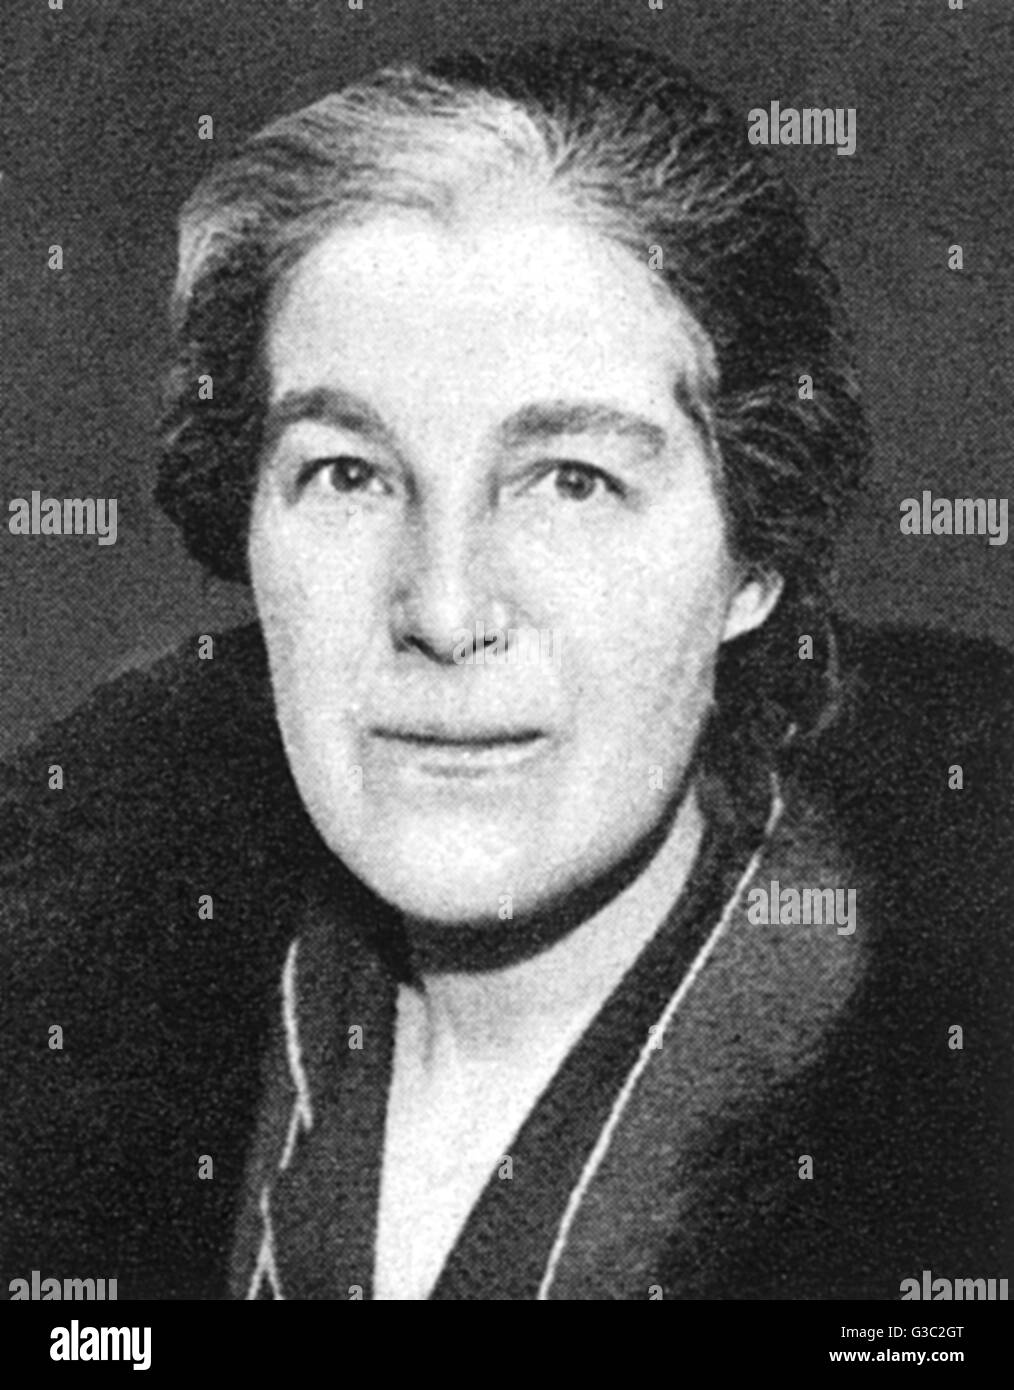 Margery Corbett Ashby (1882-1981), women's rights campaigner and Liberal candidate. She was president of several - Stock Image